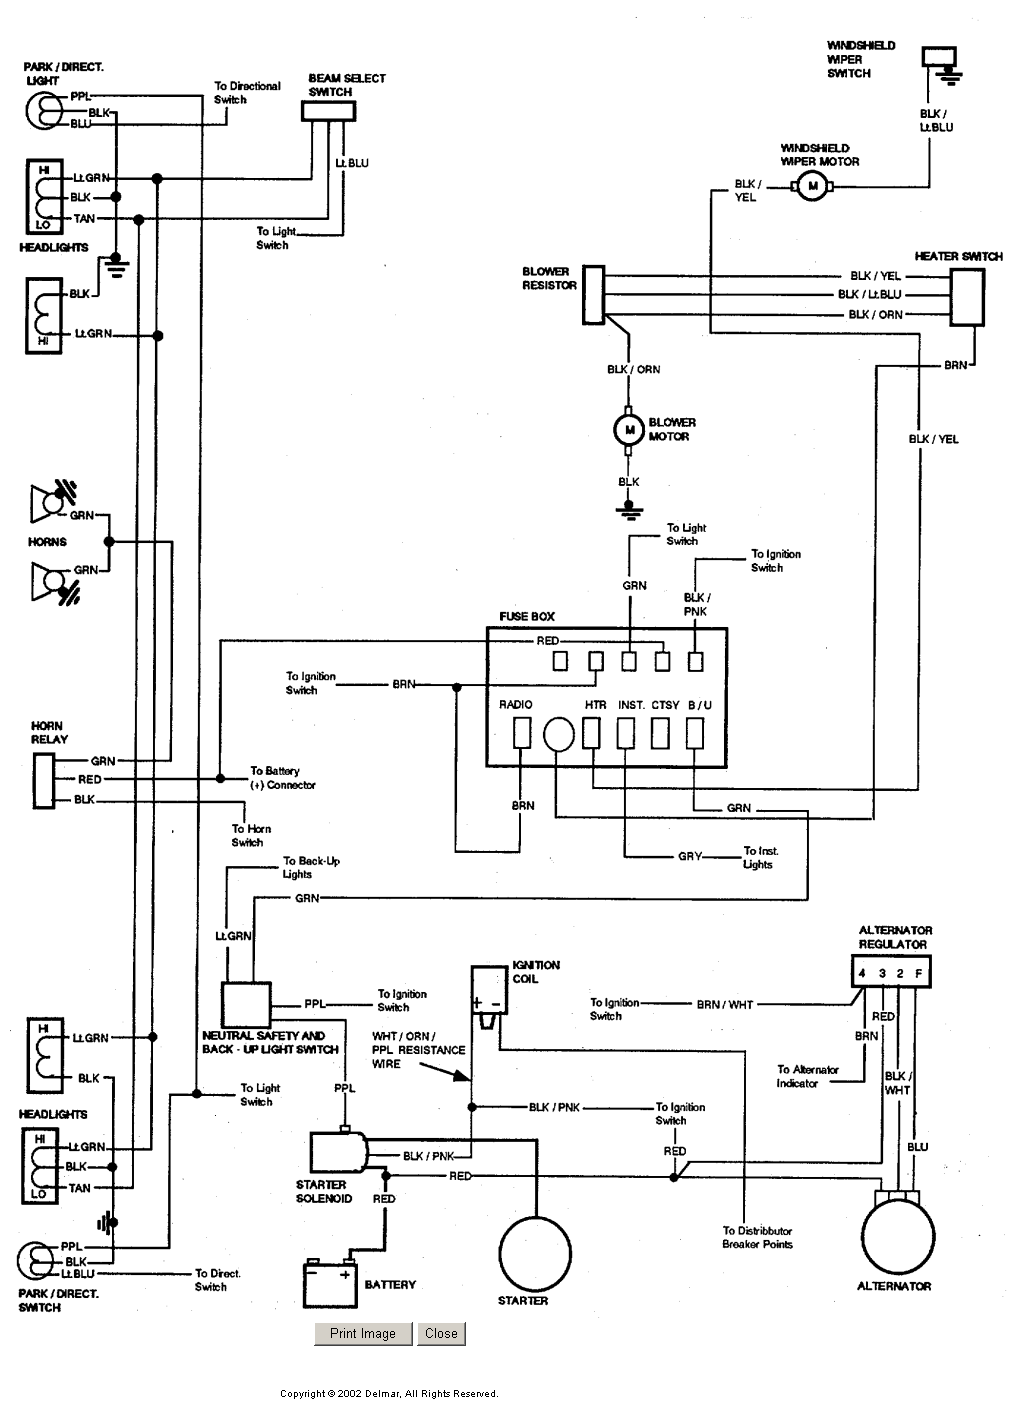 Chevelle wiring diagrams readingrat